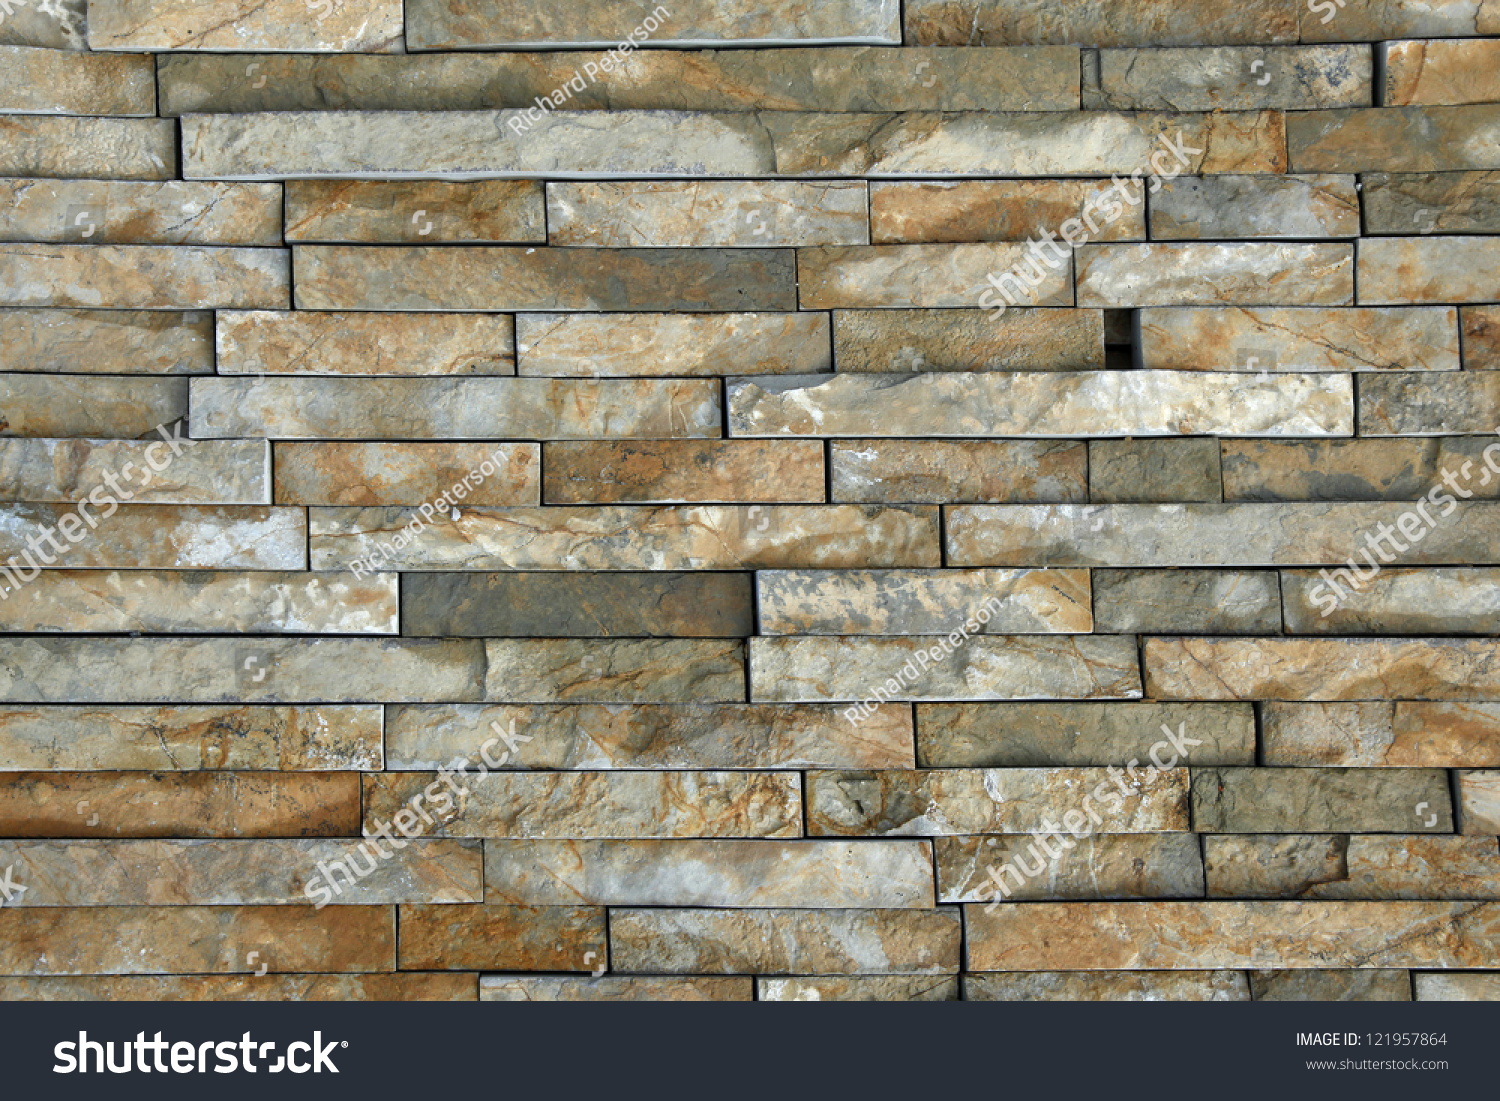 Natural Stone Pieces Tiles Walls Stock Photo (Edit Now) 121957864 ...